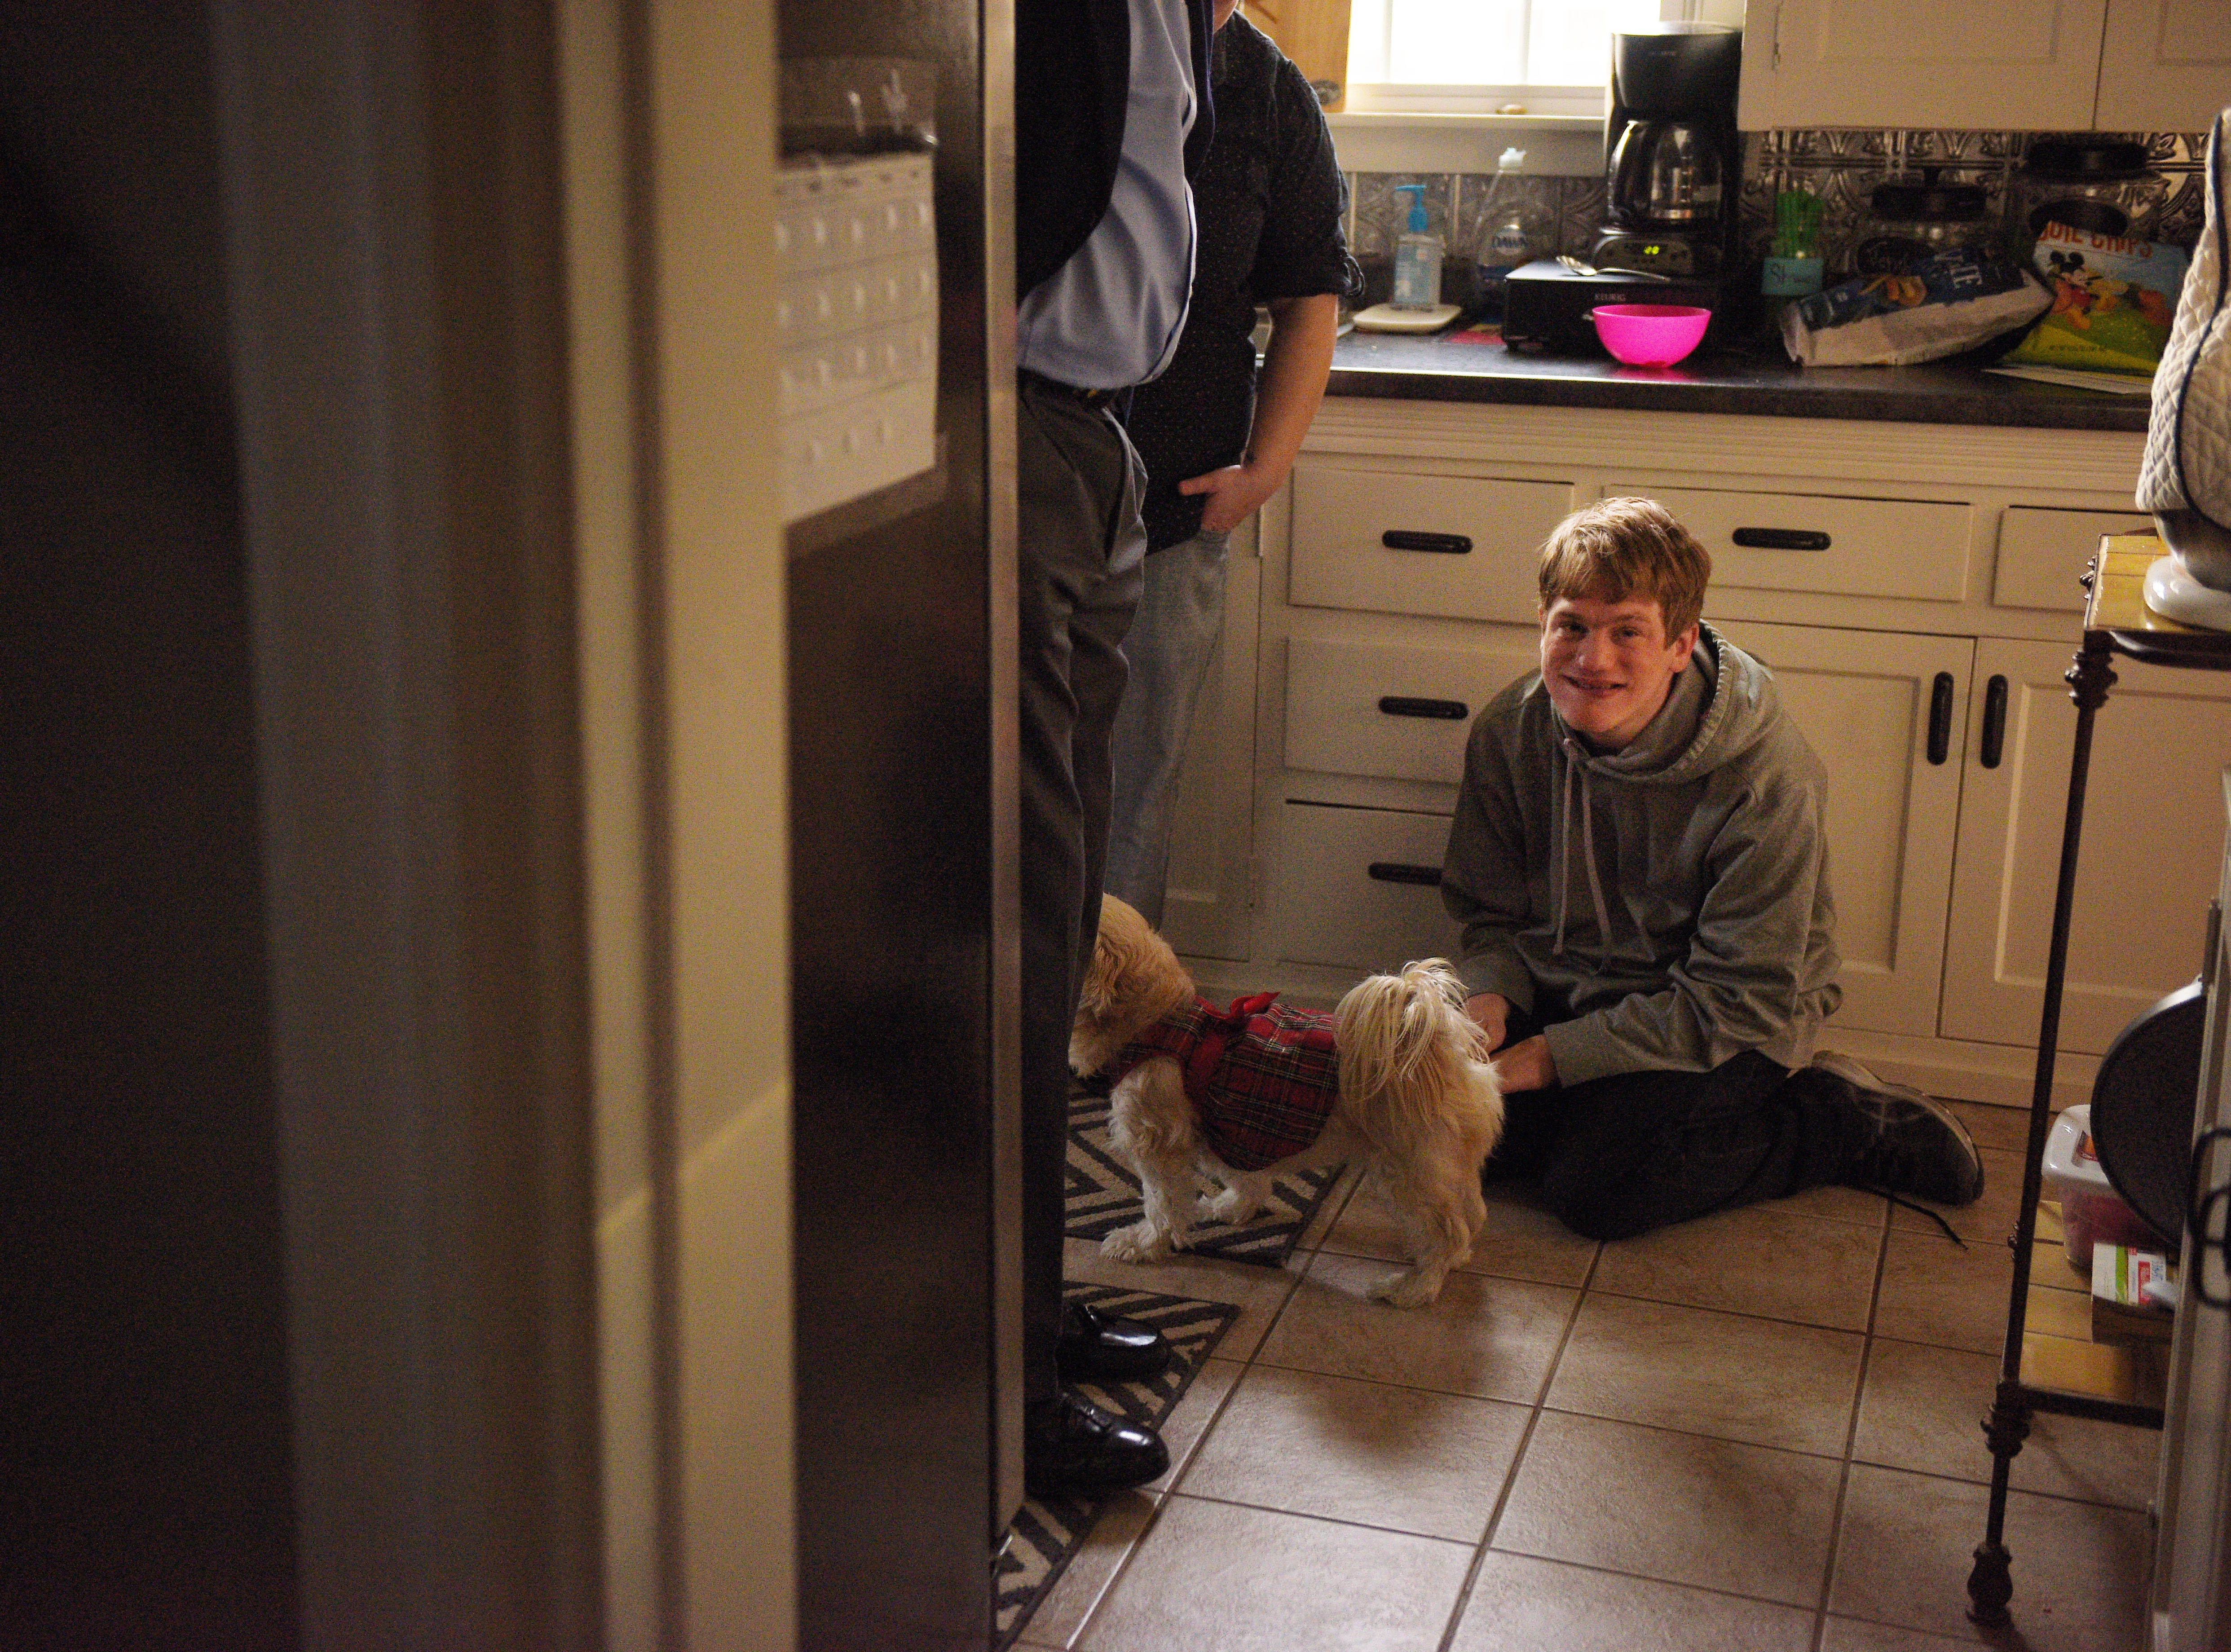 Ben Graff sits on his kitchen floor as his family comes into his new home Wednesday, Nov. 7, in Sioux Falls. He lives with Shared Living Provider Kayla Harris and roommate Jenna Askelson. Graff is now able to live independently from his parents with the assistance of Shared Living.